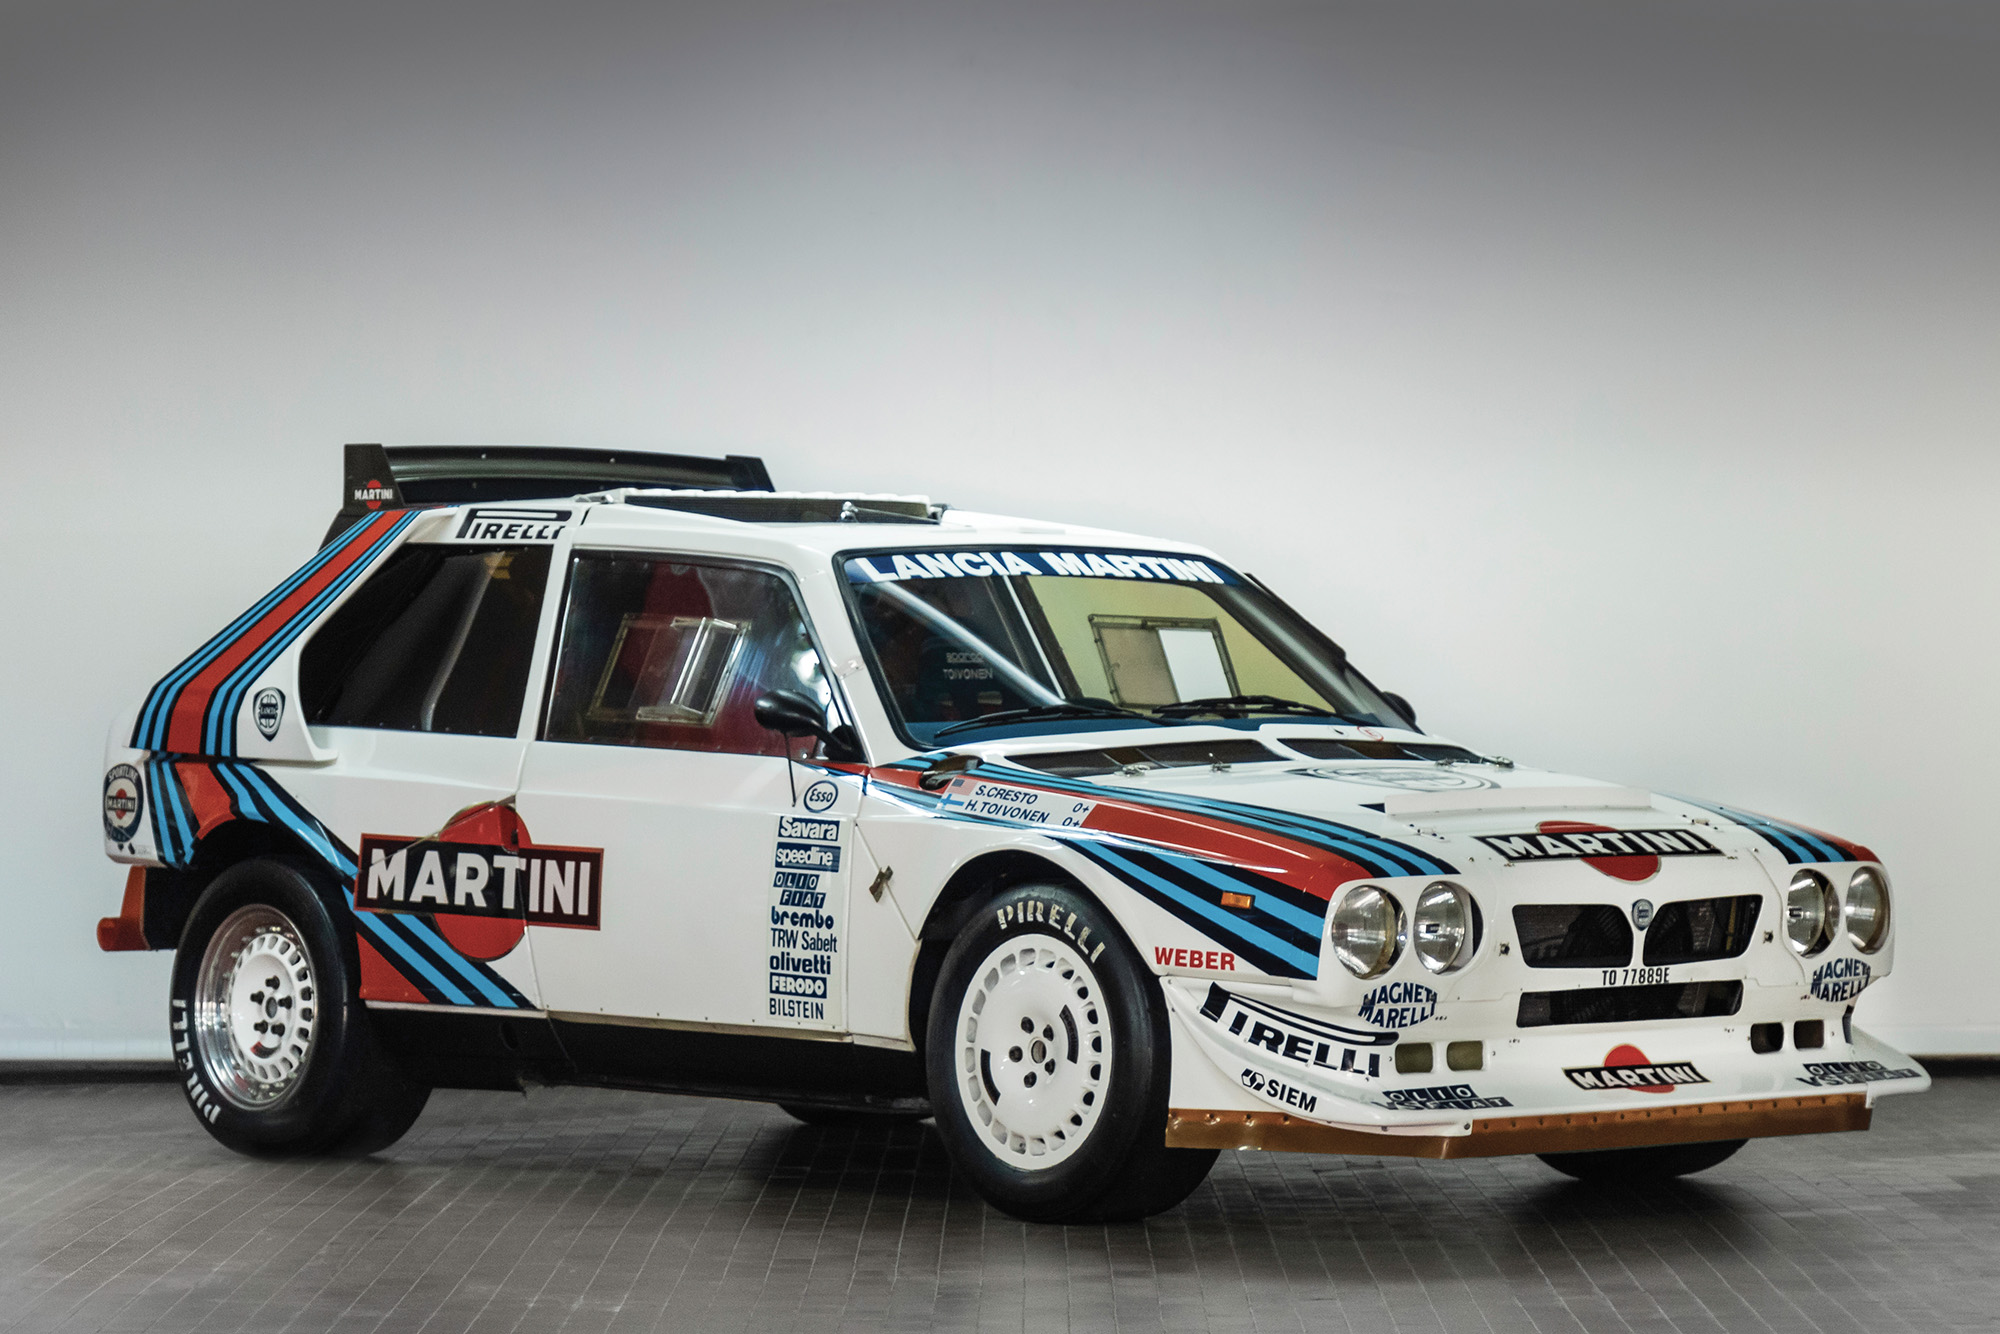 RAC Rally-winning Lancia Delta S4 sells for £764,000 at auction